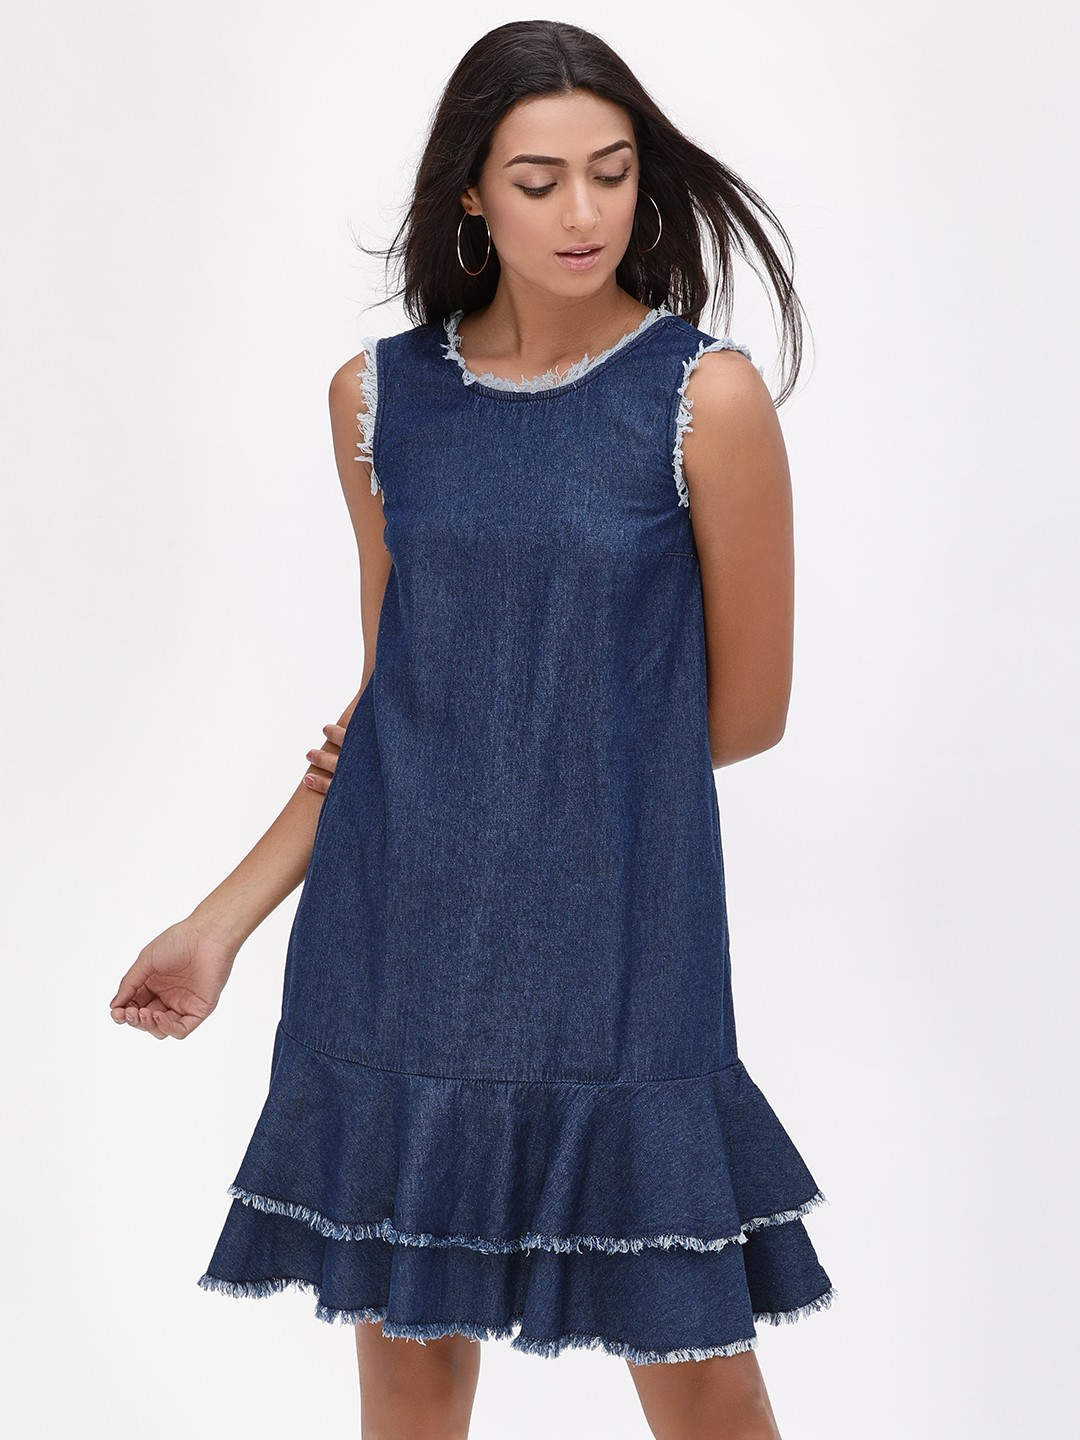 K Denim Blue KOOVS  Ruffle Hem Denim Dress 1